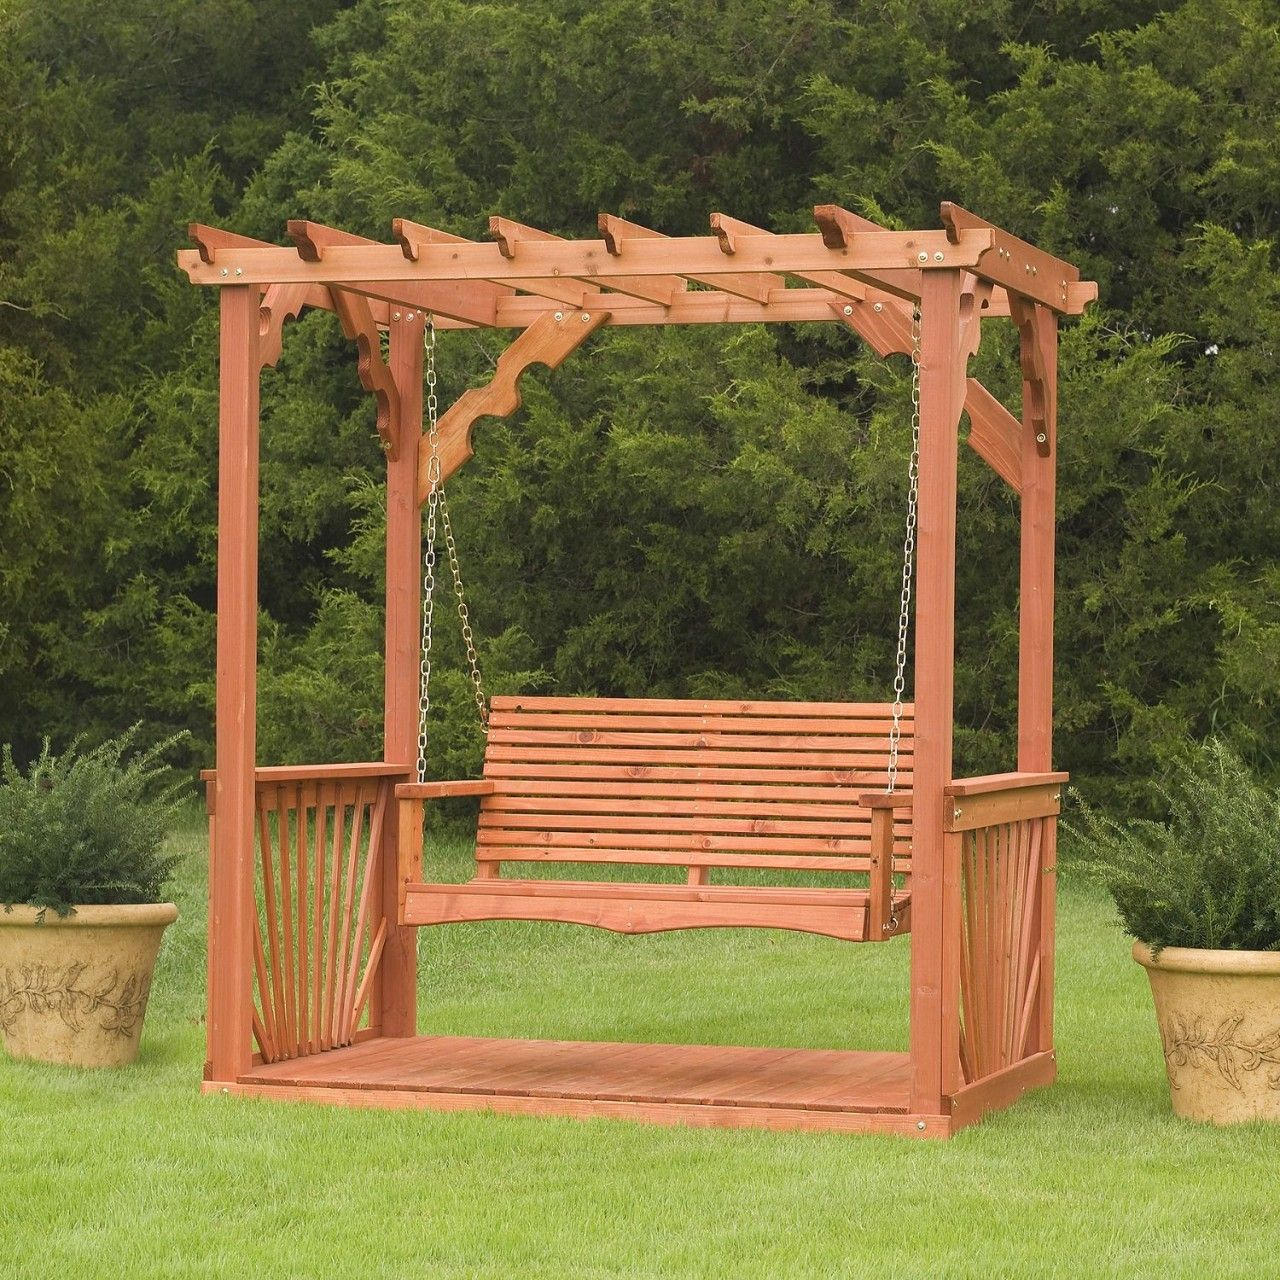 Porch swing frame plan wooden cedar wood pergola for How to build a swing set for adults